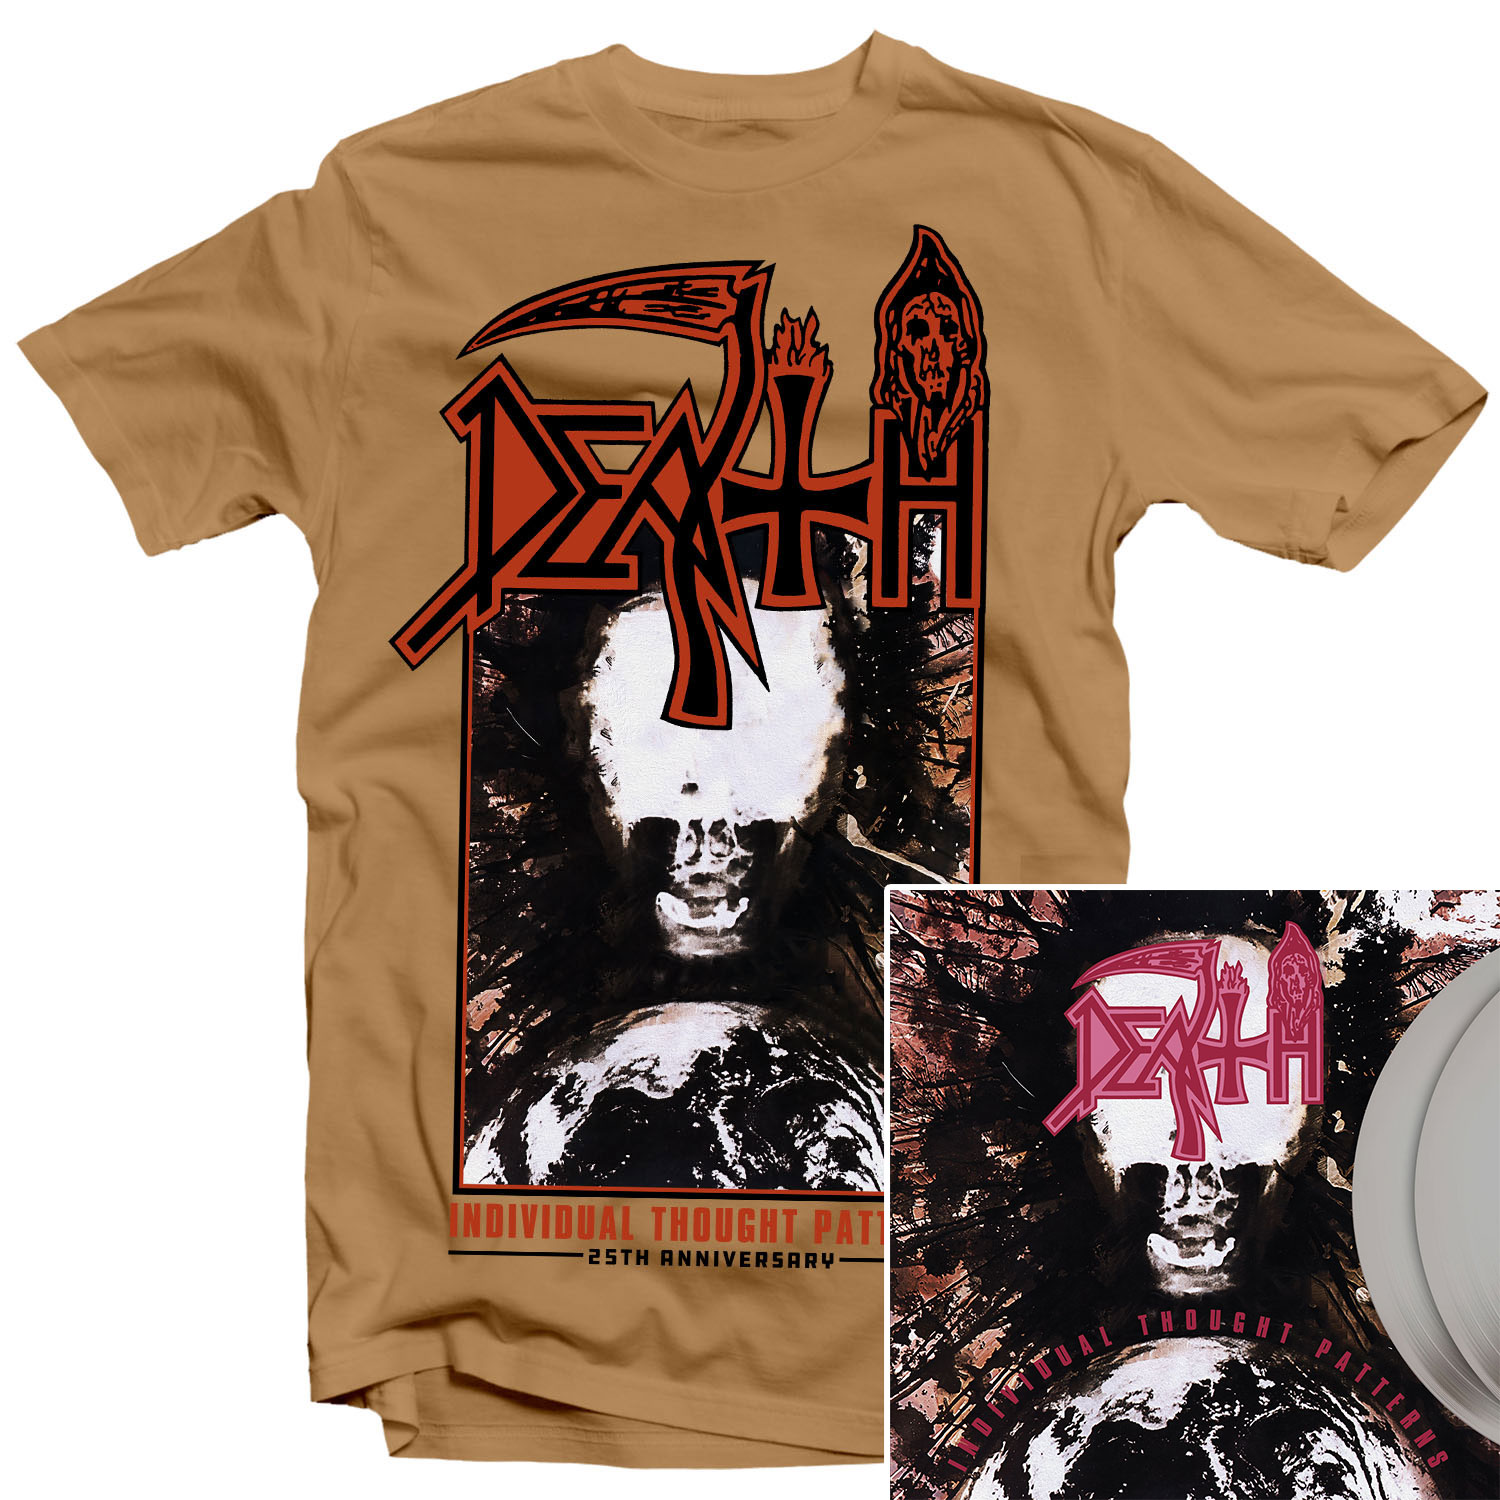 Individual Thought Patterns 25th Anniversary T Shirt + 25th Anniversary Deluxe Reissue 2LP Bundle